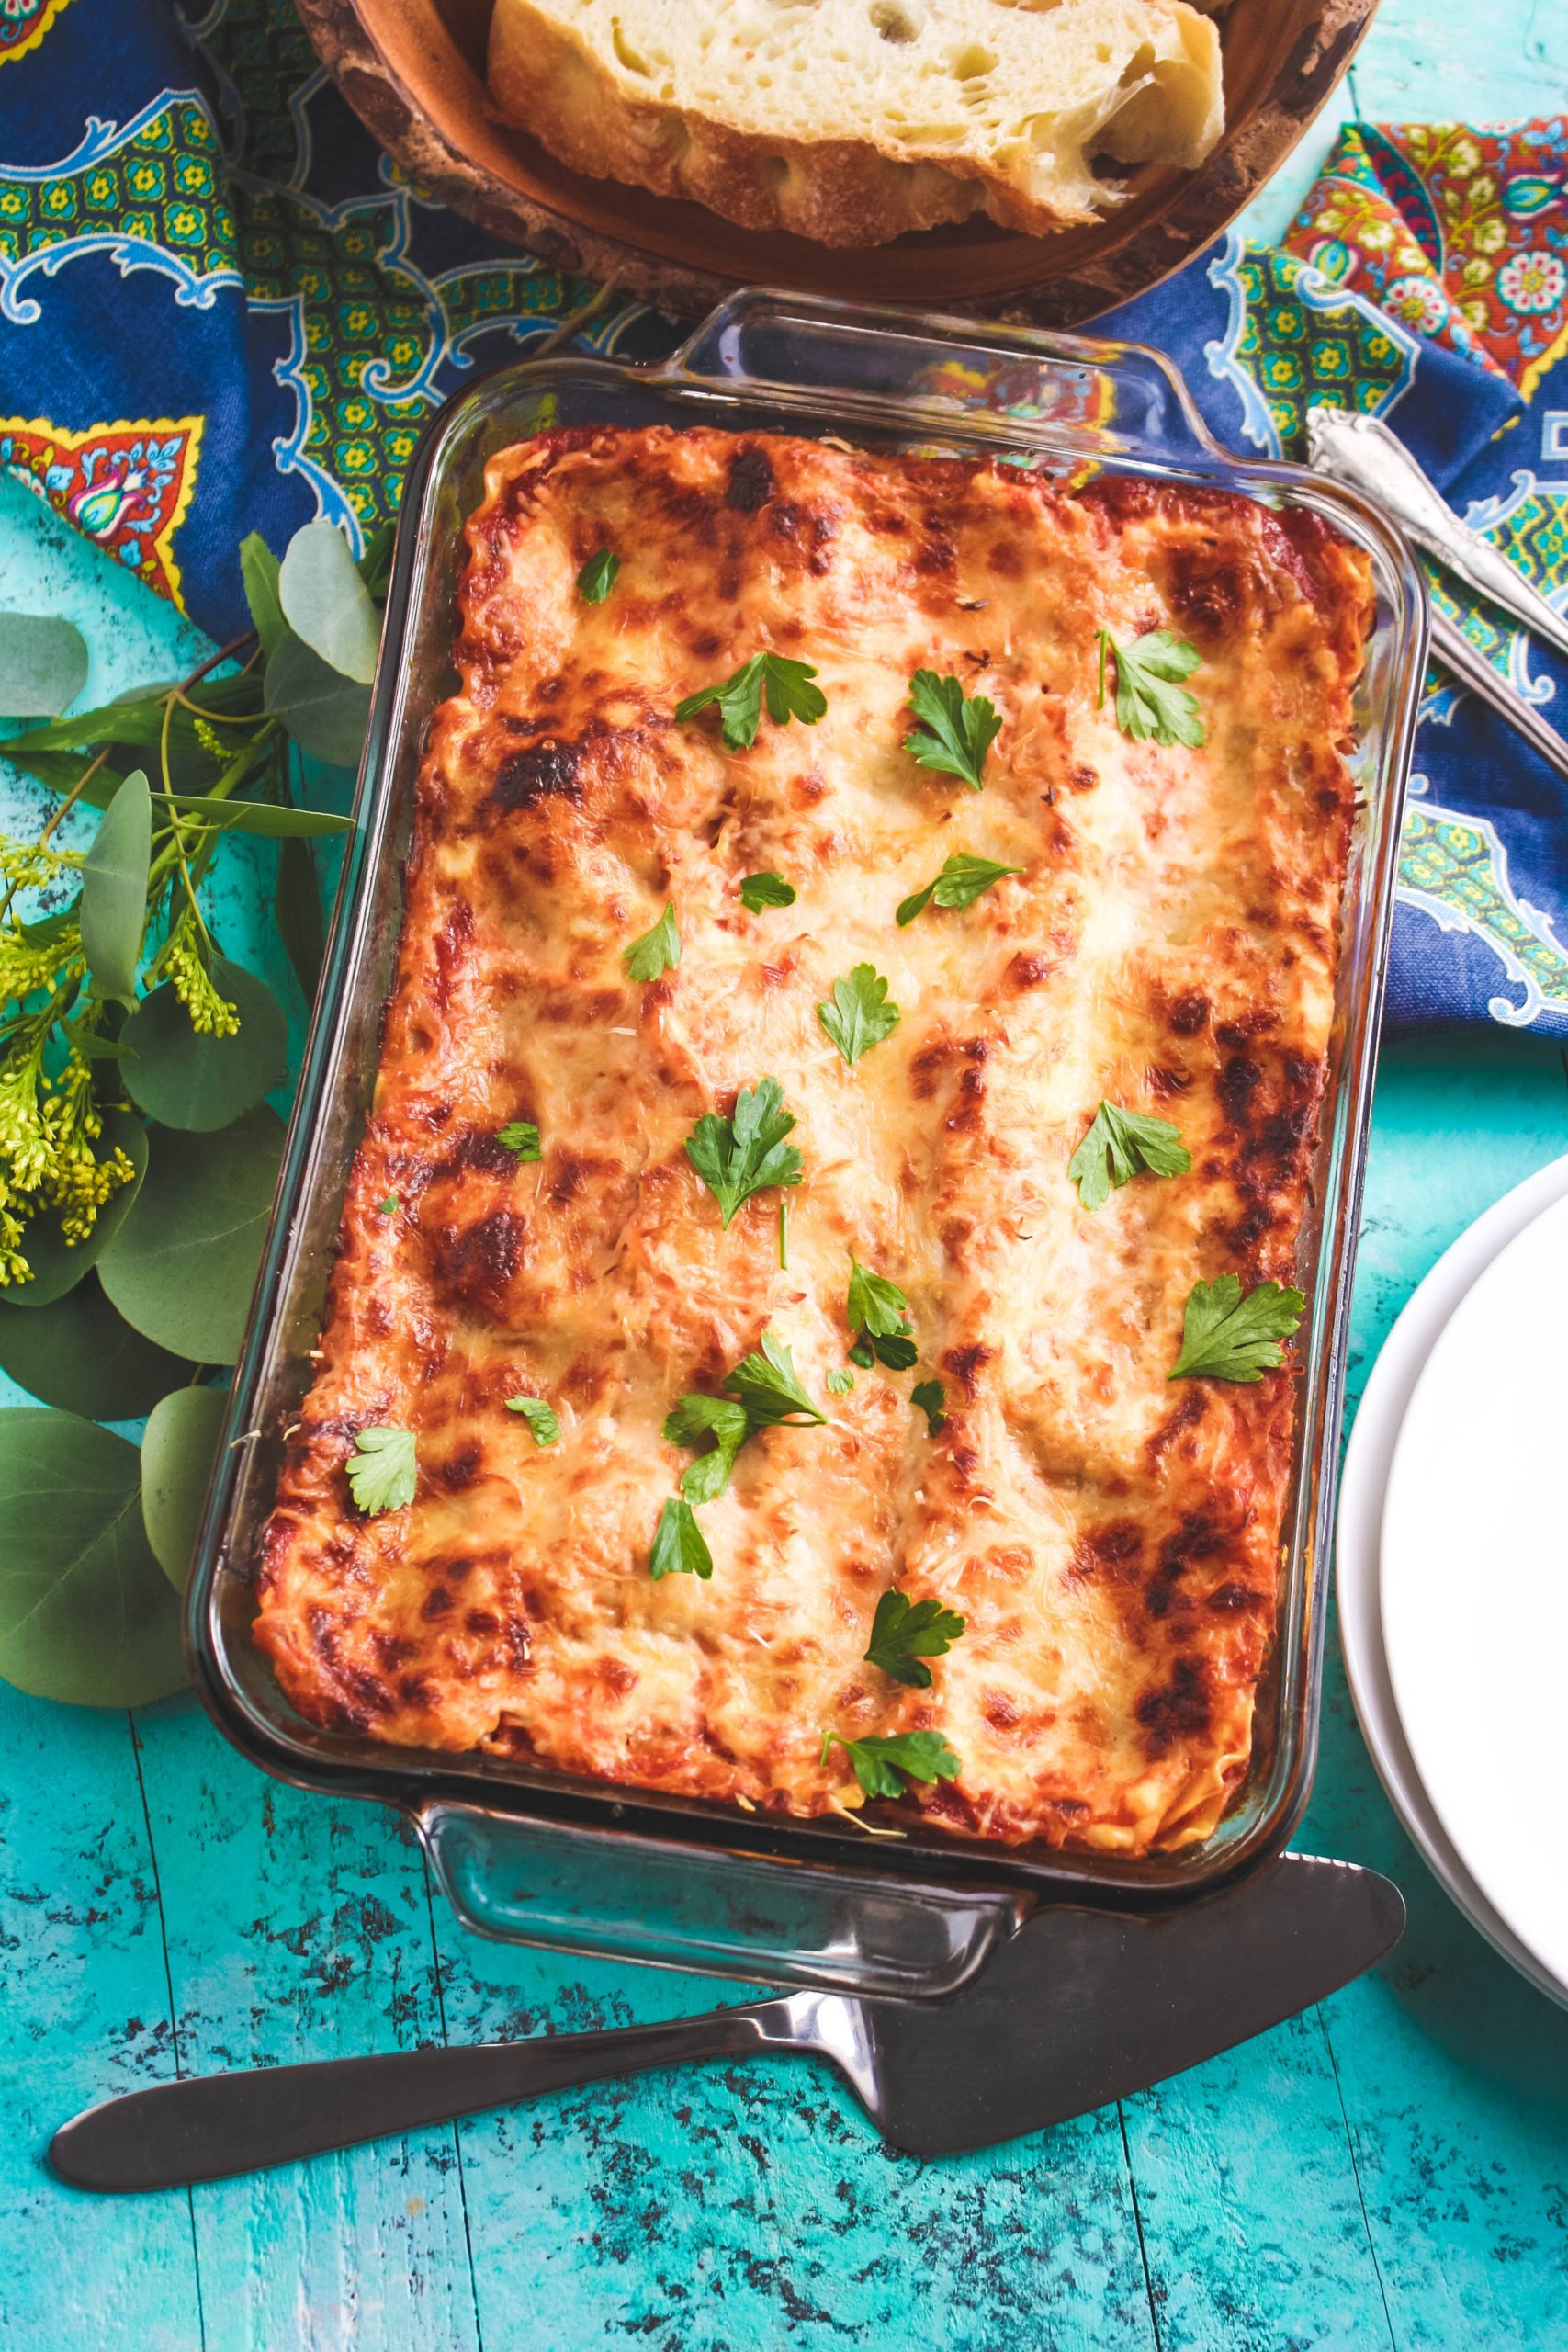 You'll love this Mushroom and Sausage Lasagna with its robust flavors!